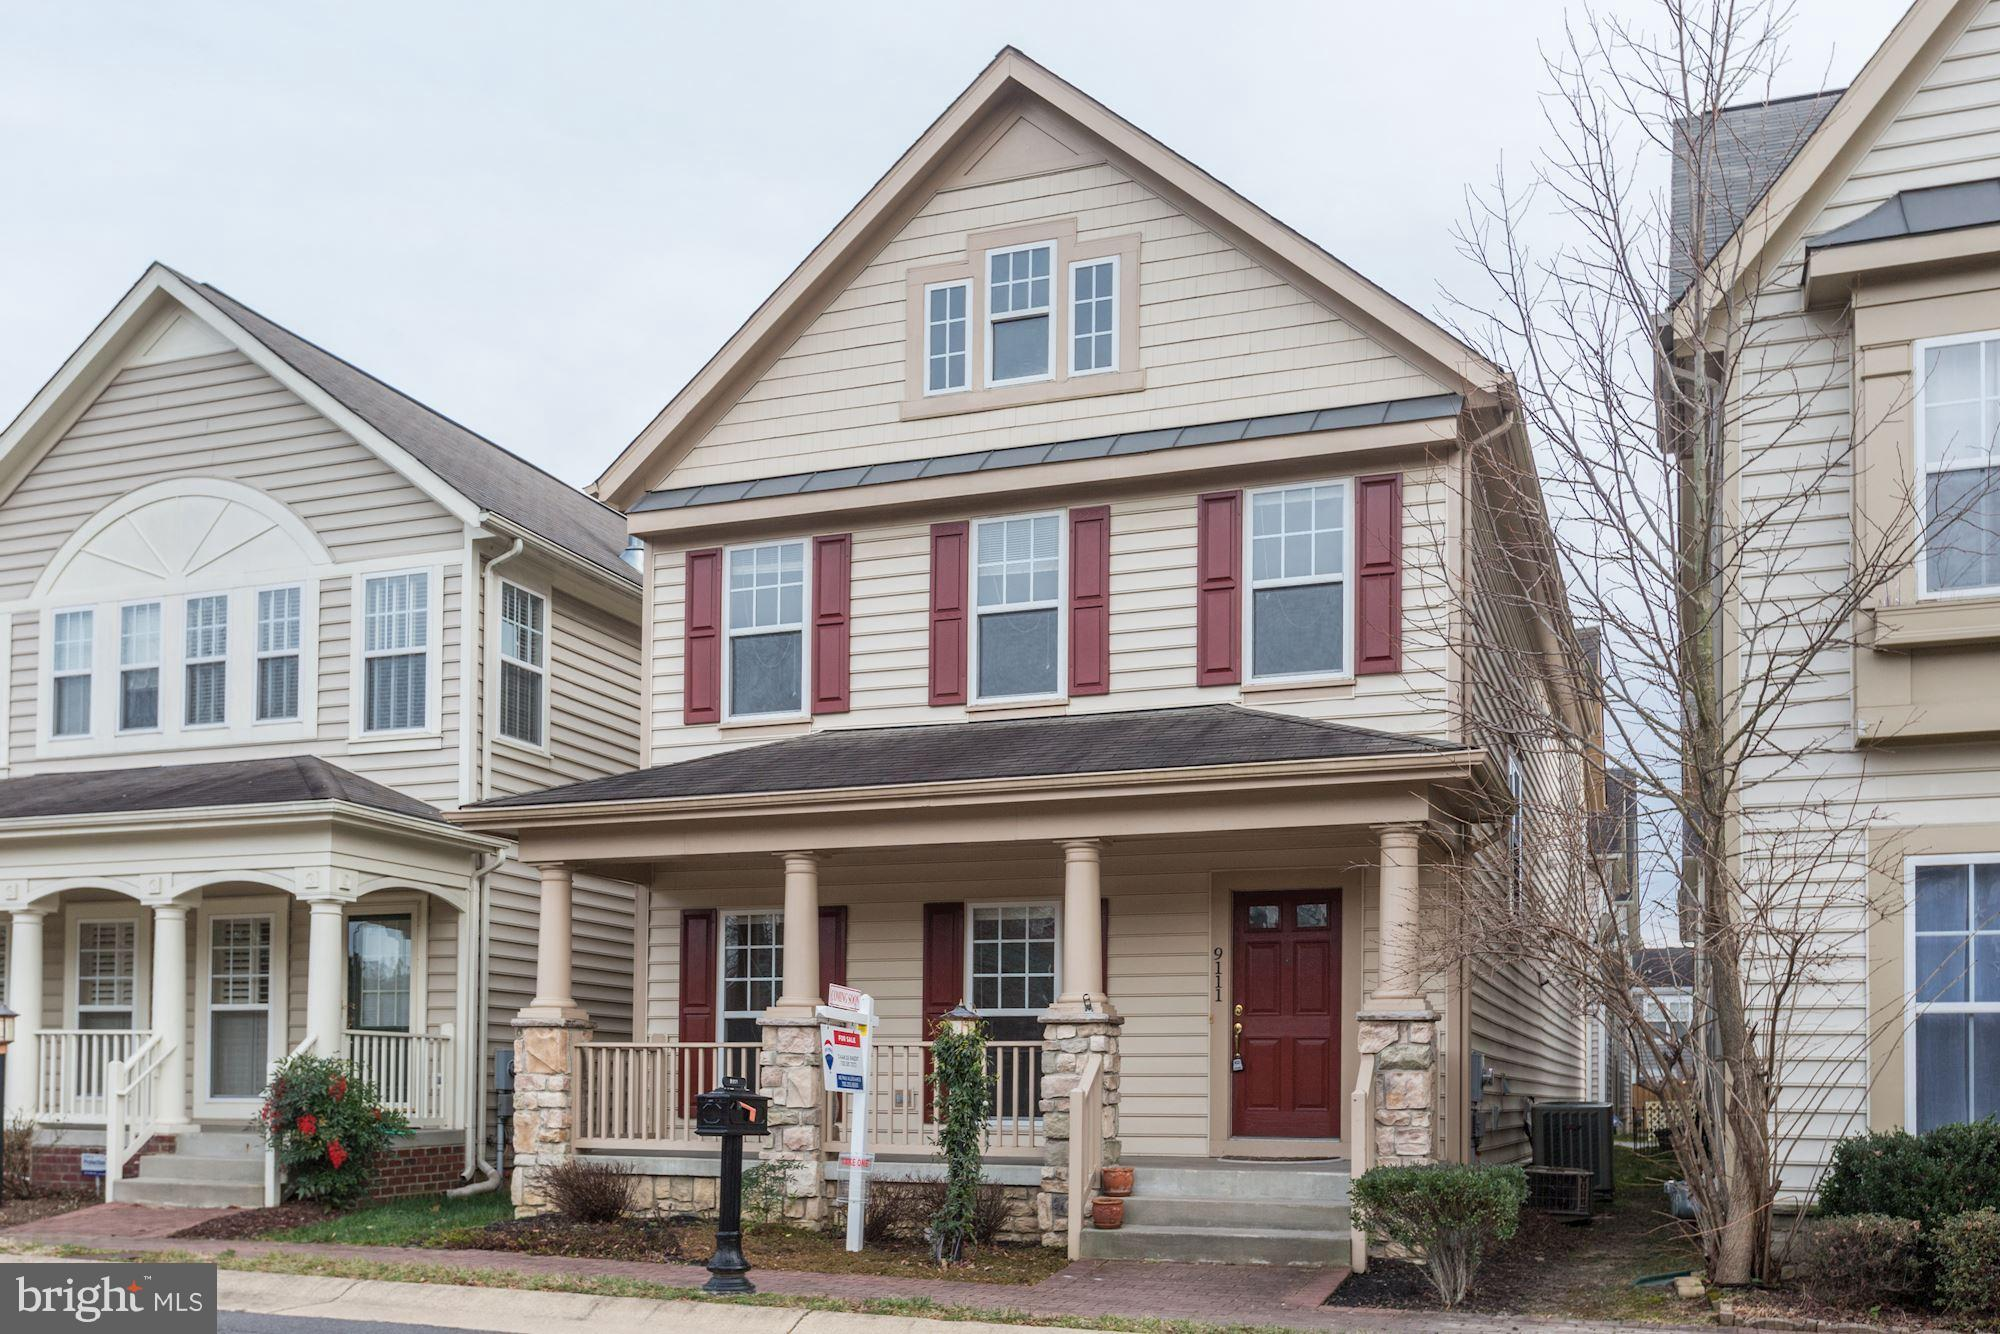 Move-In Ready 3 Bedroom, 3.5 Bath Colonial Home in  Lorton Town Center Landby! Floor Plan Features: Separate Living / Dining Rooms, Upgraded Eat-In Kitchen, Luxurious Master Bedroom with En-Suite Bath, Fully Finished Lower Level with Optional 4th Bedroom and Full Bath. Upgrades Include: Fresh Paint Through-Out, New Carpet, Hardwood Floors, Stainless Steel Appliances, Fireplace and More! Premier Community Amenities: Walk Across Street to Pool, Fantastic Location: Near VRE Train Stop, Shopping, Dining and Major Commuter Routes! - Rental also Available.